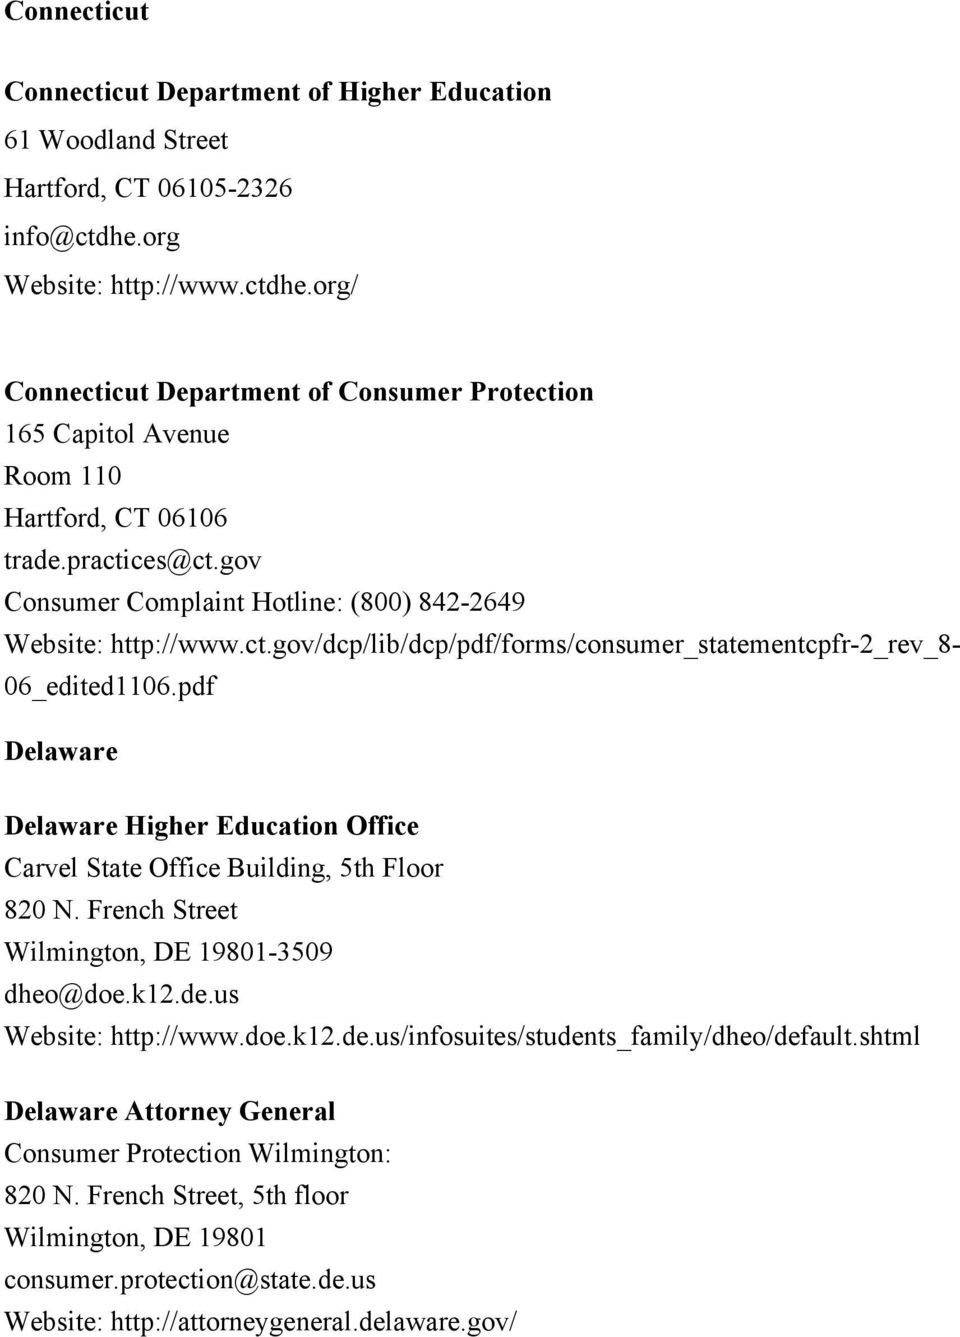 ct.gov/dcp/lib/dcp/pdf/forms/consumer_statementcpfr-2_rev_8-06_edited1106.pdf Delaware Delaware Higher Education Office Carvel State Office Building, 5th Floor 820 N.